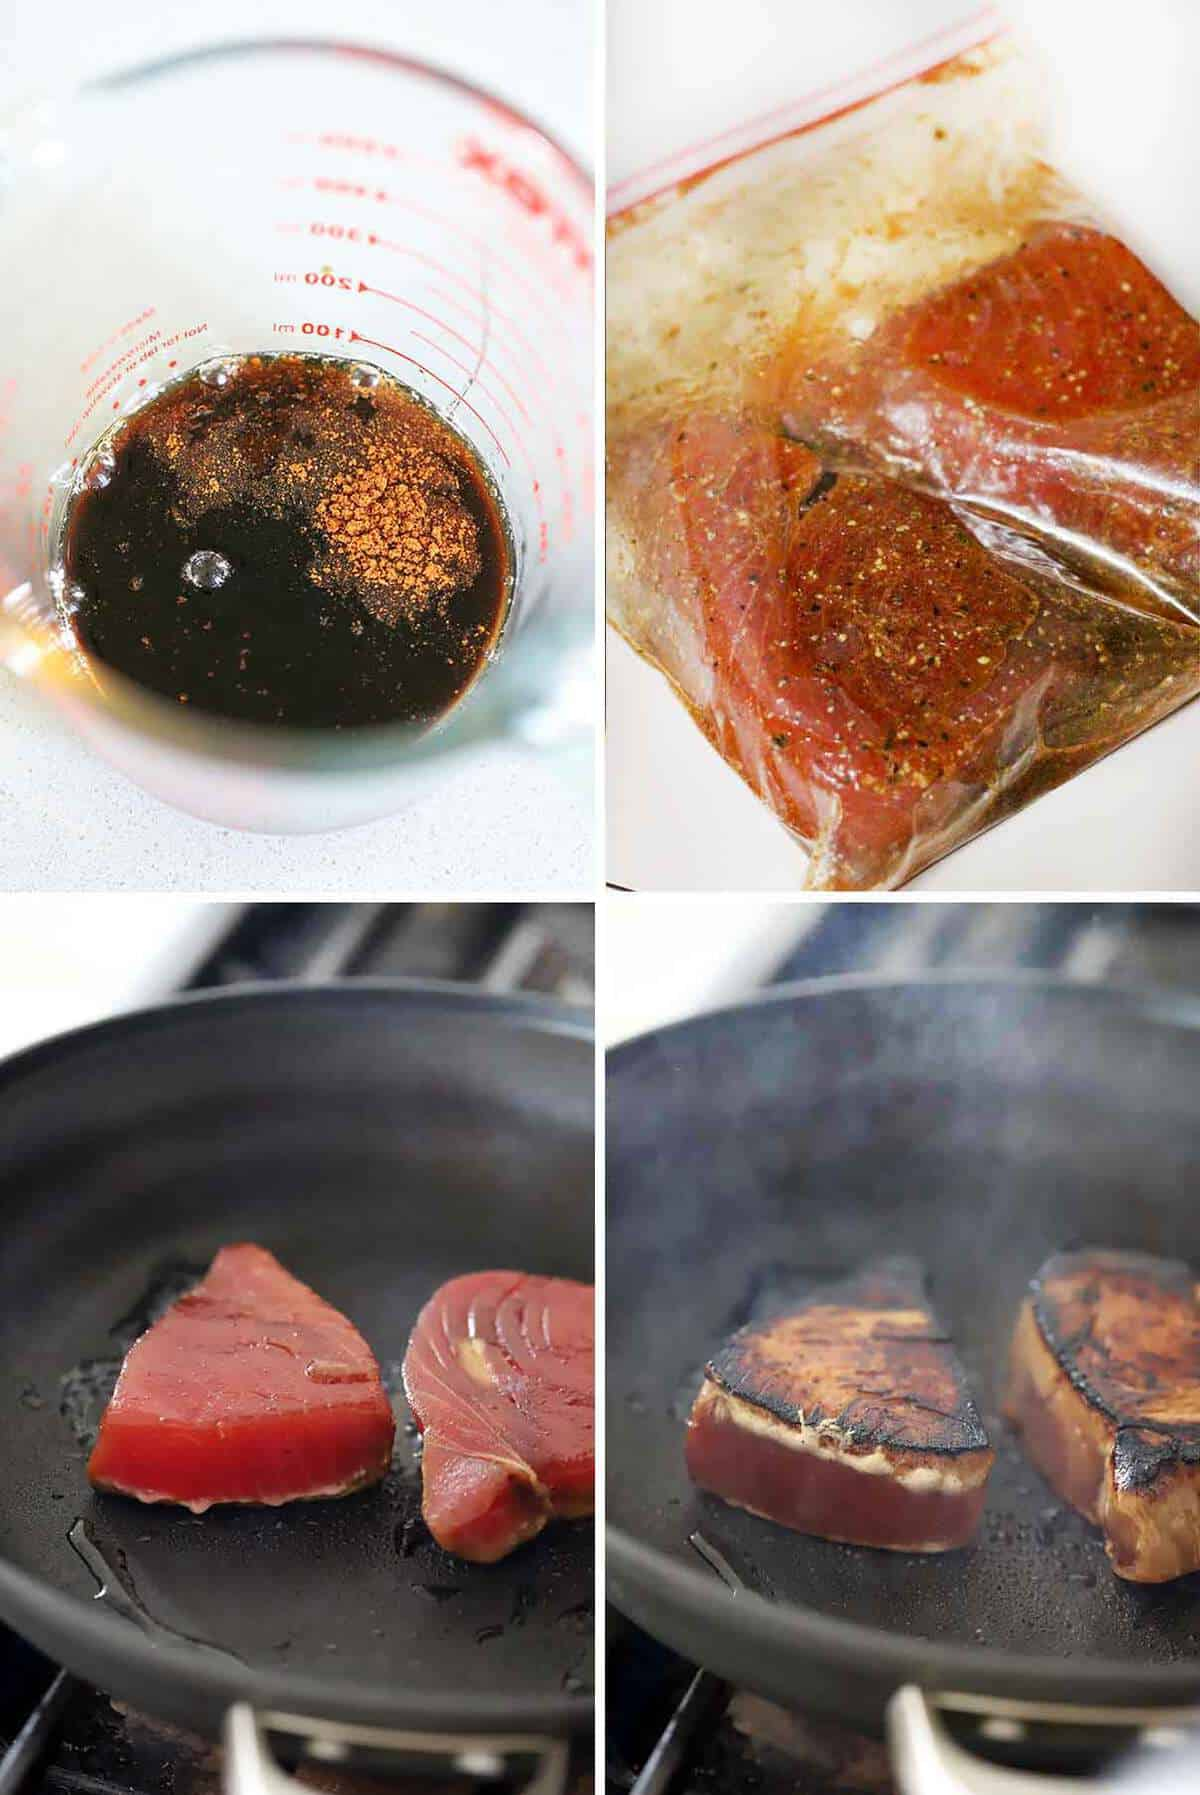 Ahi tuna steaks marinating and seared to medium rare in a nonstick skillet.